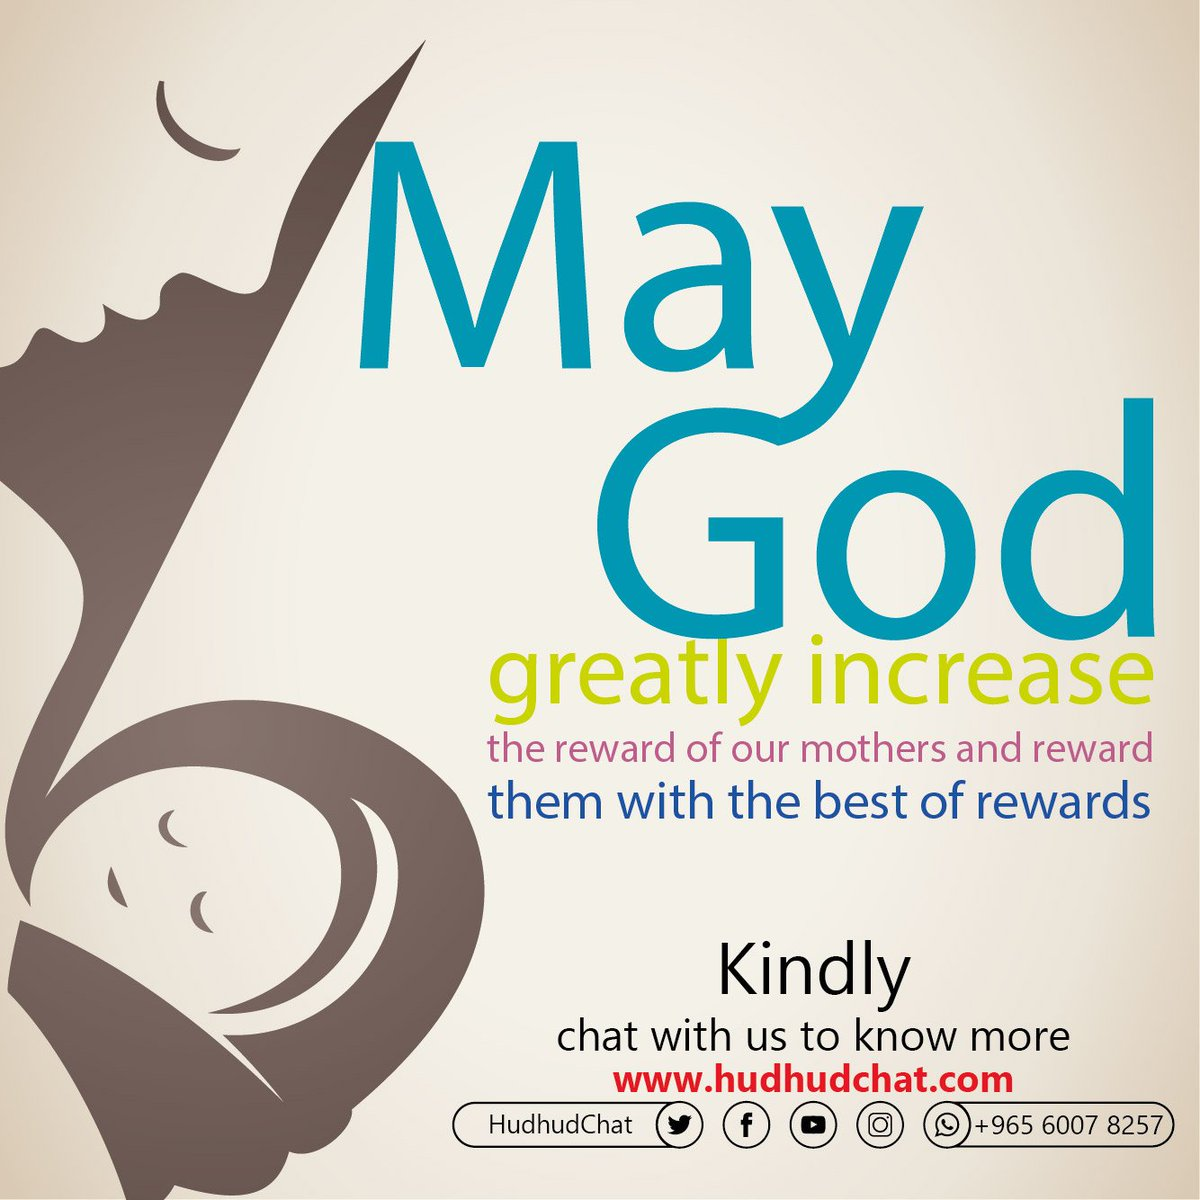 May #God greatly increase the reward of our #mothers and #reward them with the #best of rewards.  Kindly, chat with us to know more:    http:// hudhudchat.com       #HonorYourMother #Hudhudchat #StrangerThings3<br>http://pic.twitter.com/6jyEDCwBCd